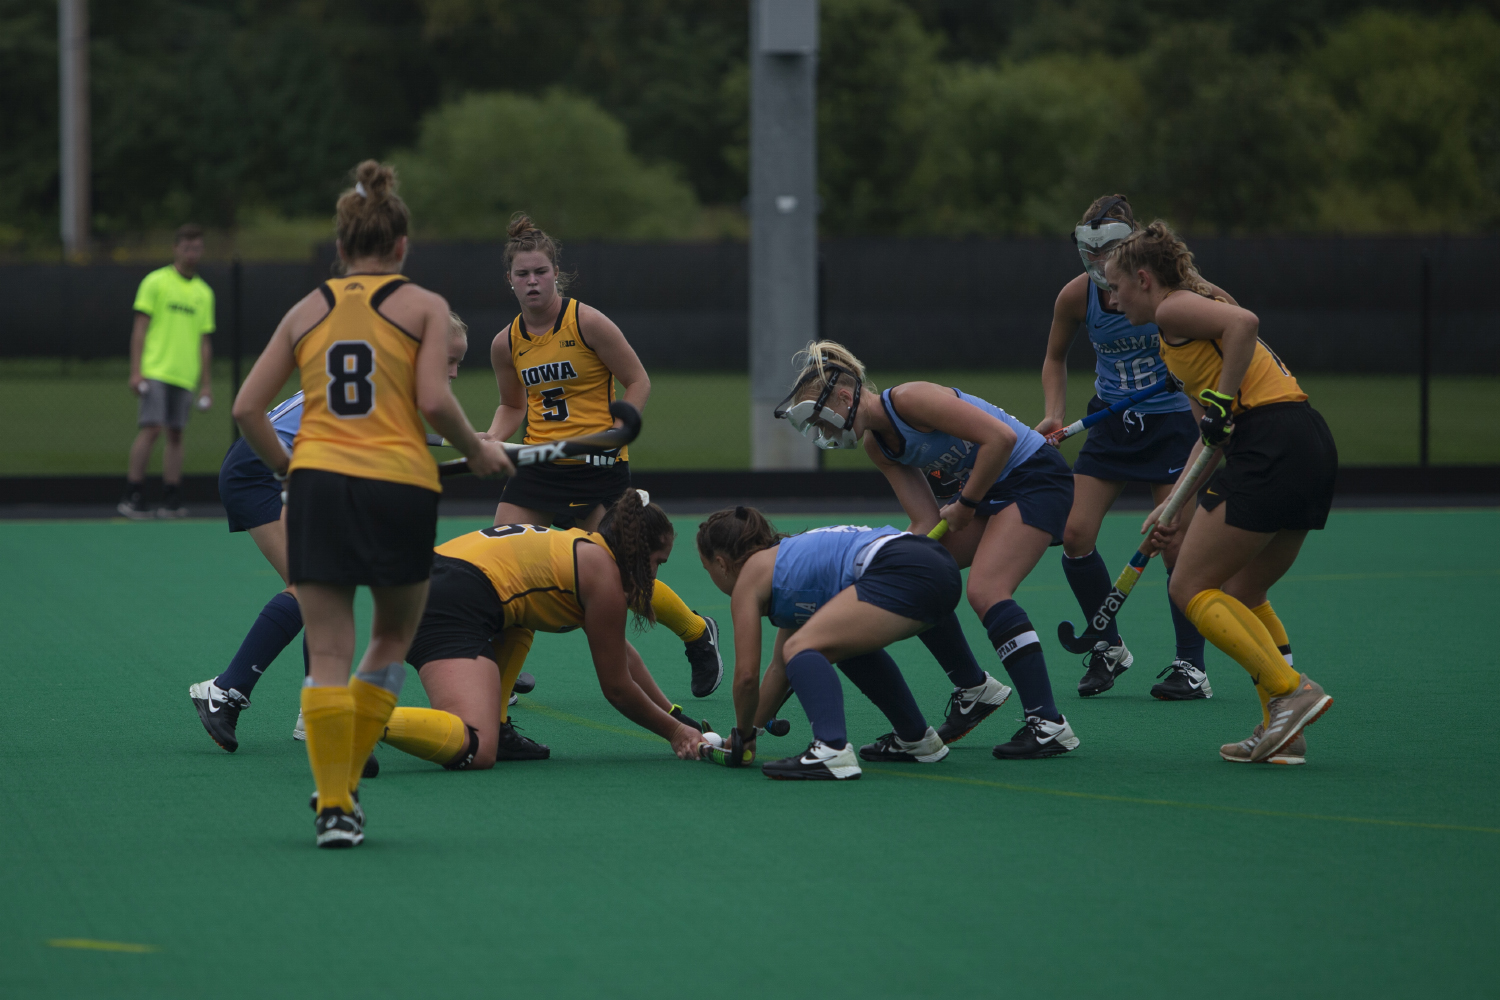 Iowa+defender+Anthe+Nijziel+gets+in+a+standoff+with+a+Columbia+player+during+a+field+hockey+game+between+Iowa+and+Columbia+at+Grant+Field+on+Sunday%2C+September+8%2C+2019.+The+Hawkeyes+defeated+the+Lions%2C+3-1.